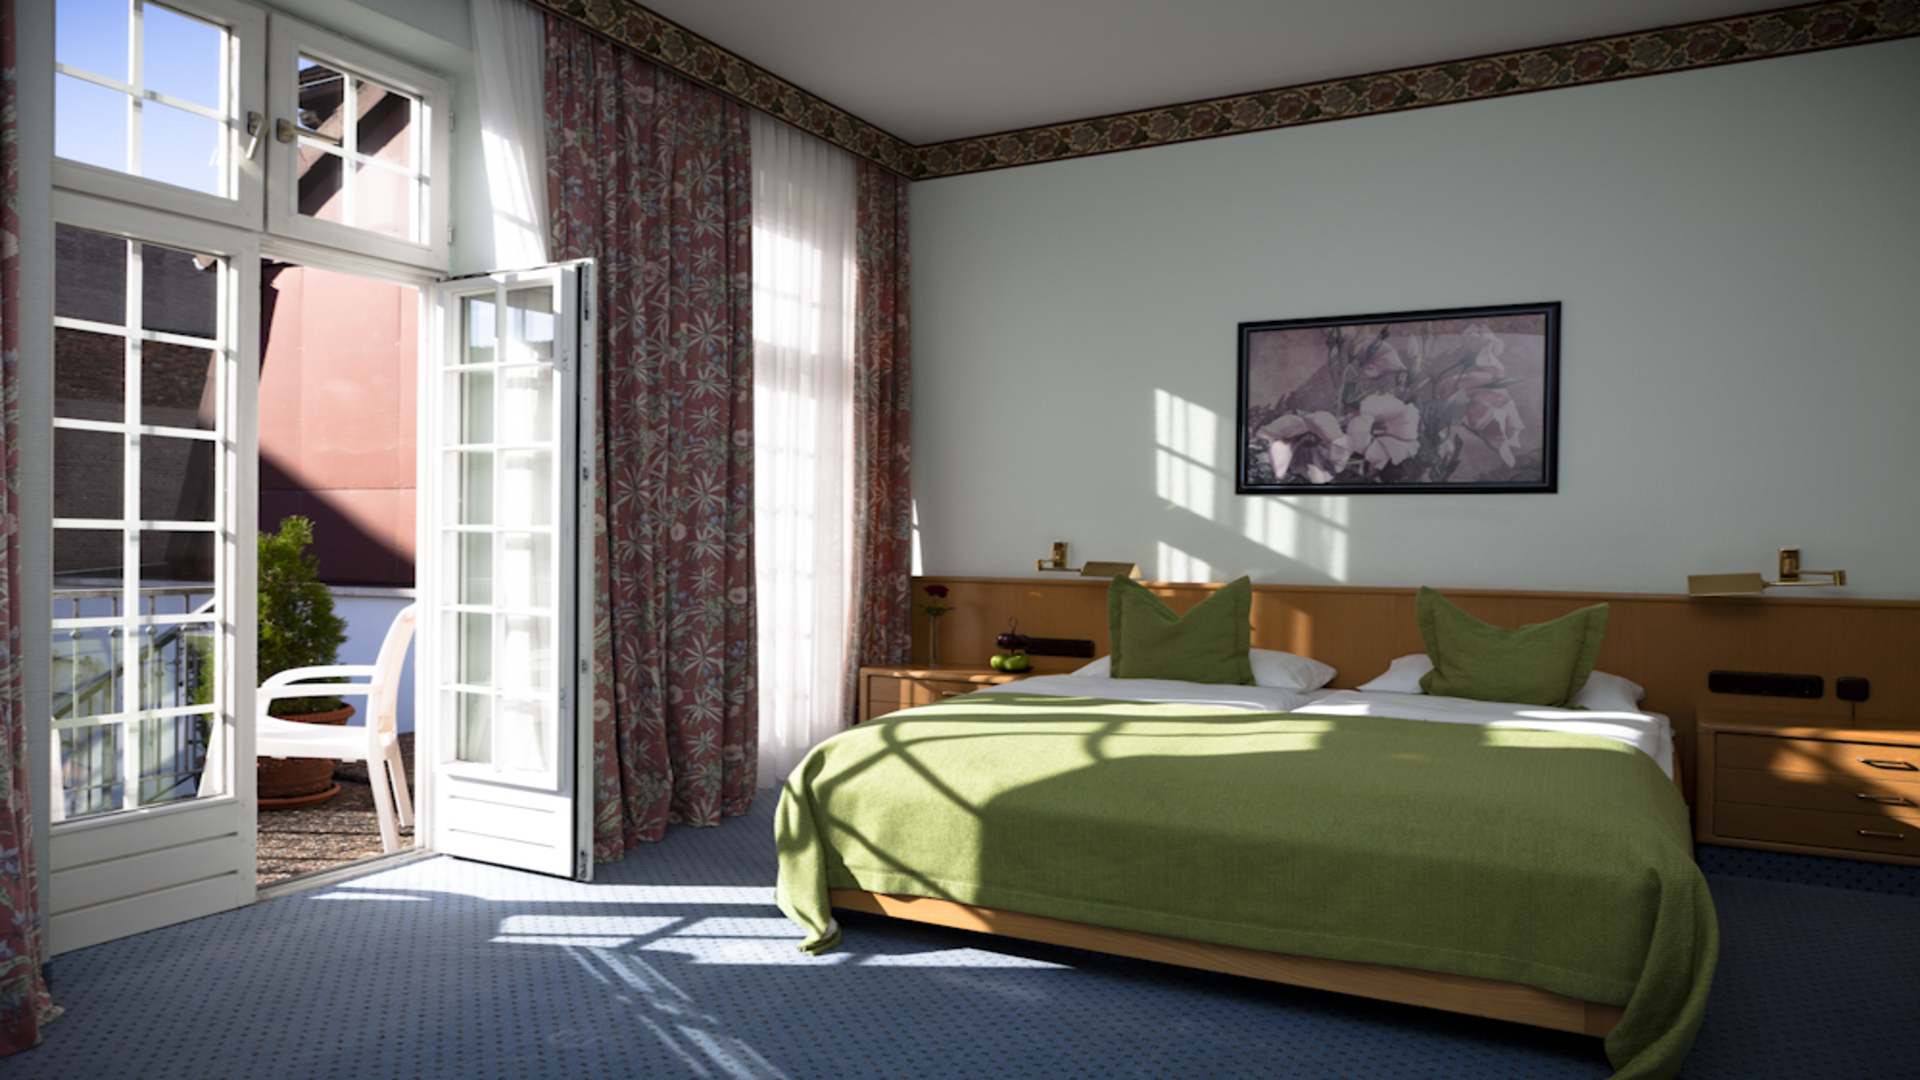 Hotel-Borchers-Zimmer2.png